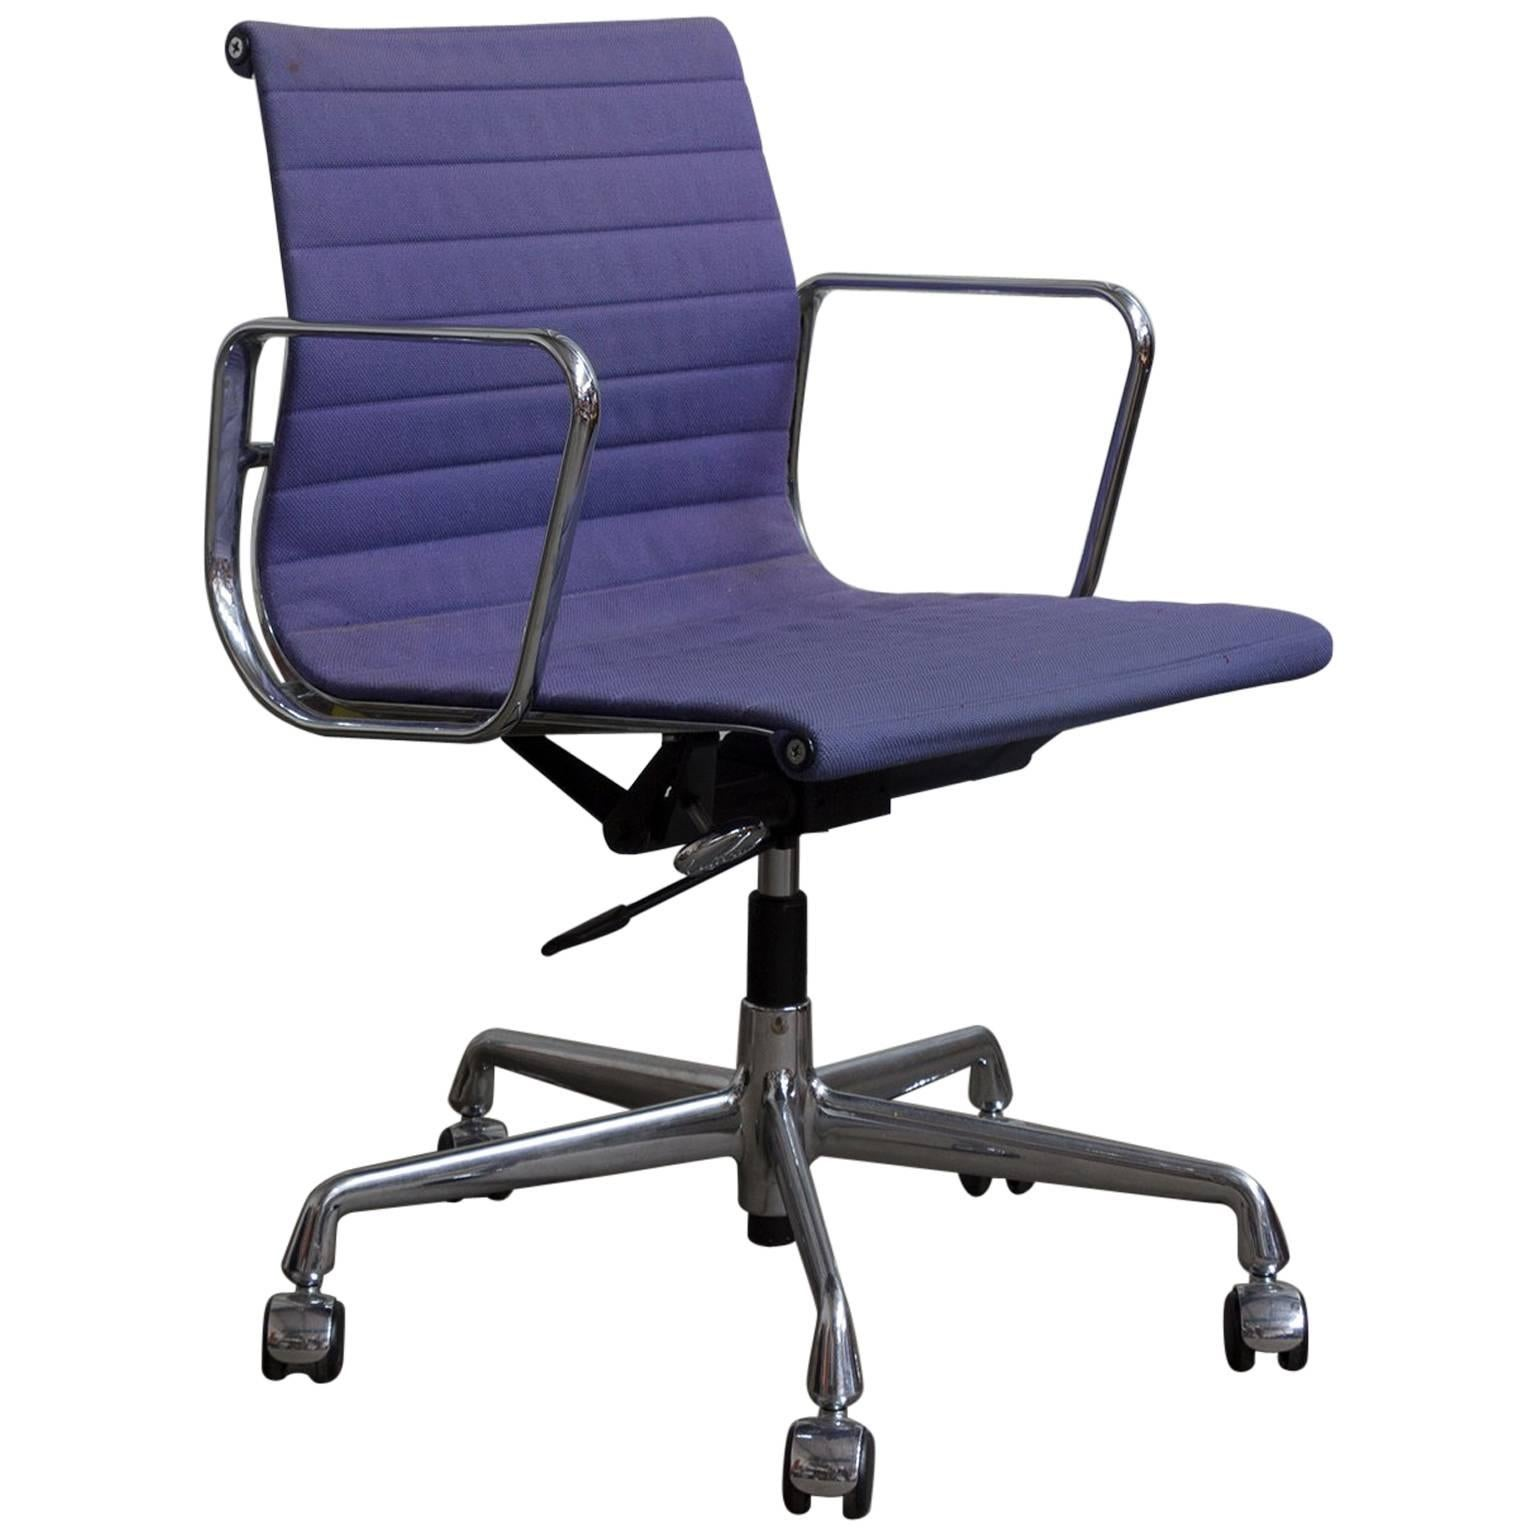 1958 Ray And Charles Eames Purple Adjule Tilt Office Chair With Five Wheels For At 1stdibs